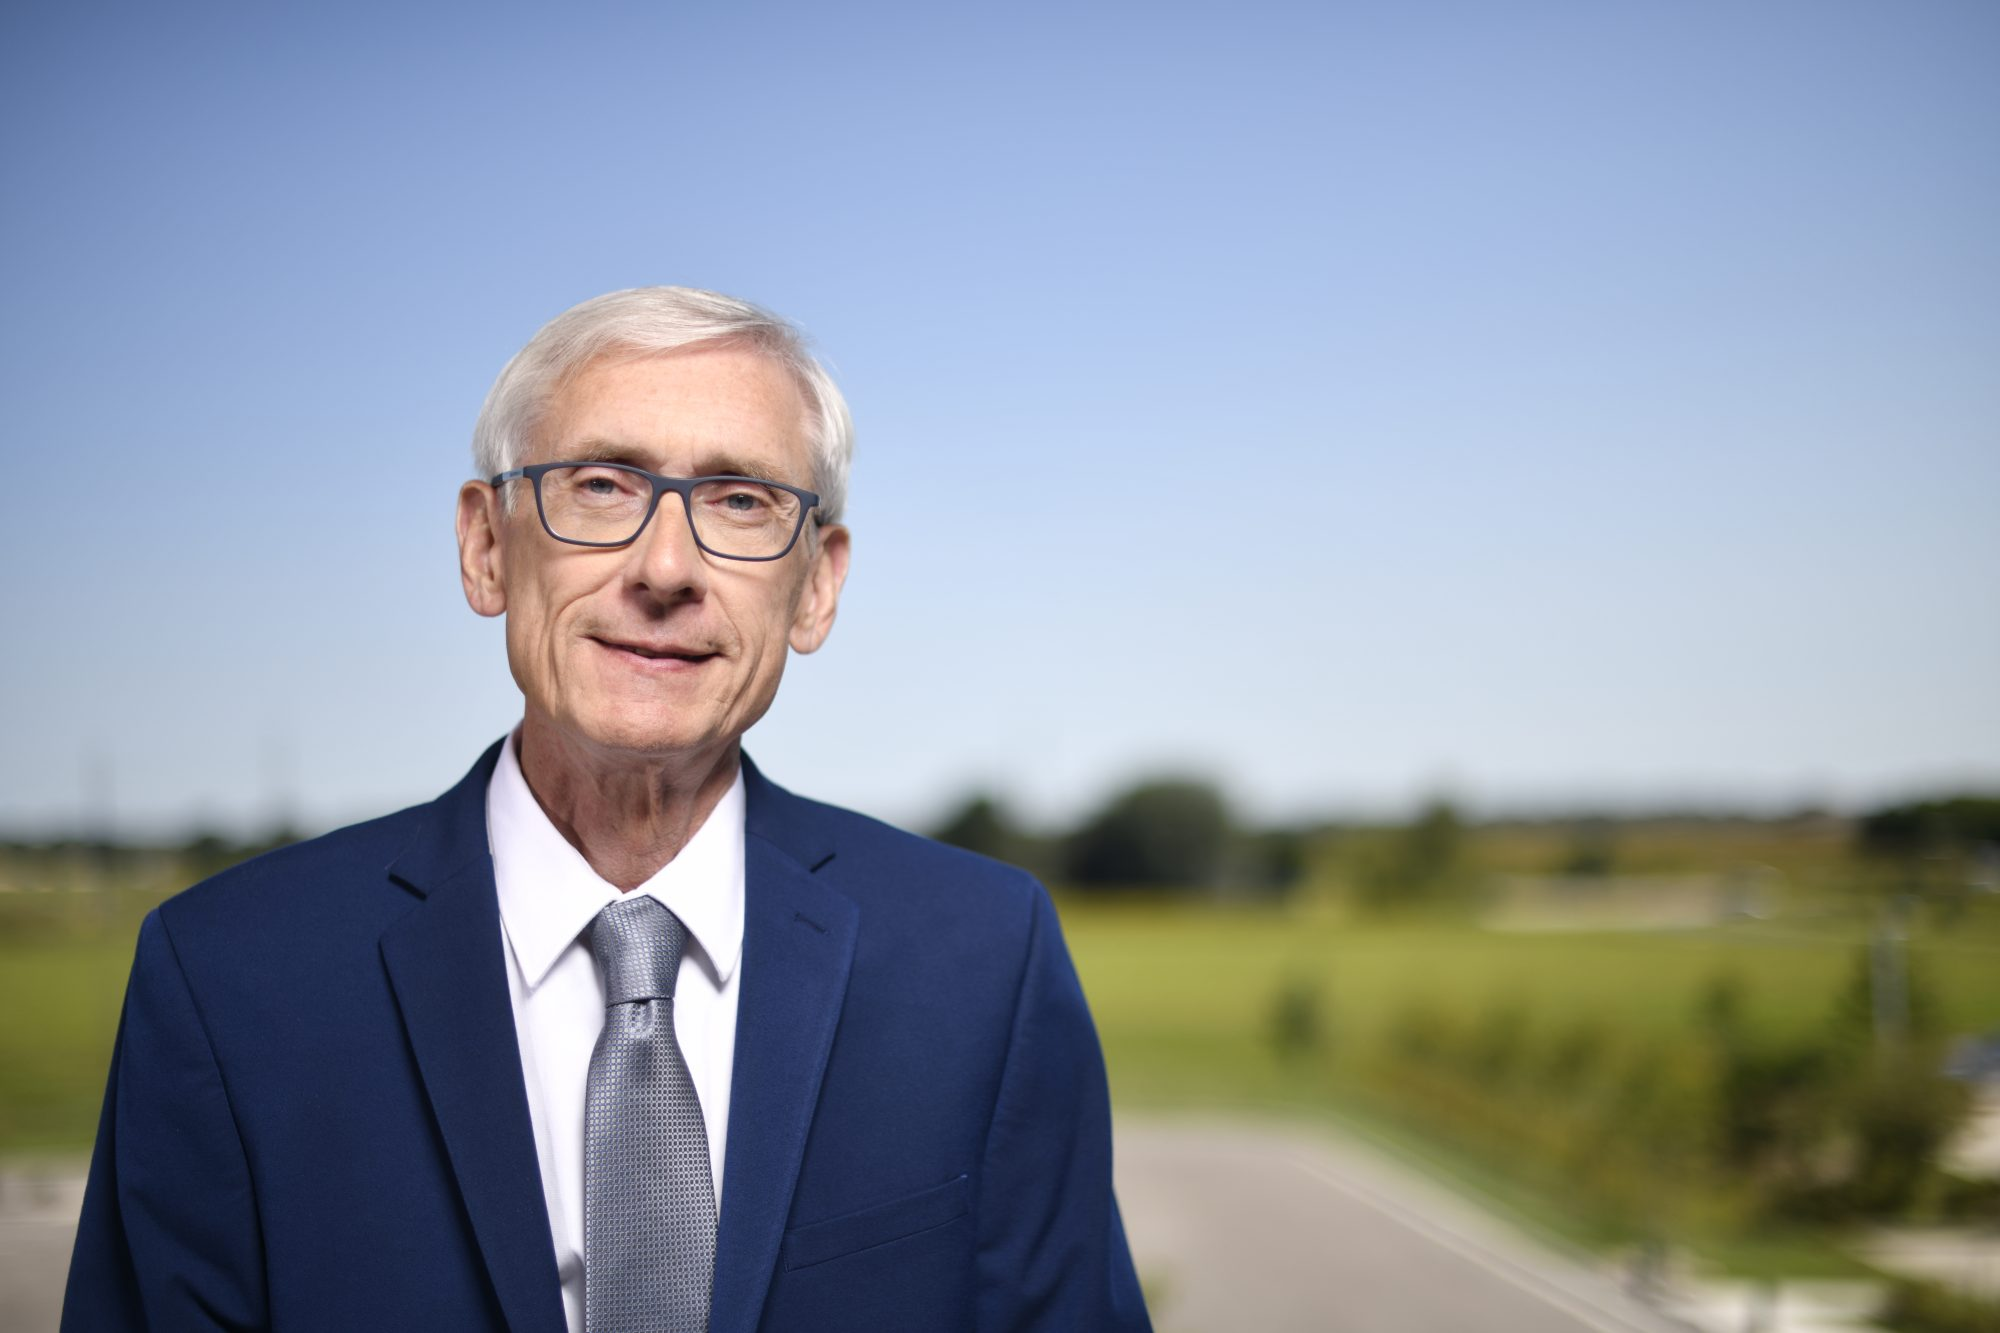 Gov. Evers Announces Successful Roll Out of Online COVID-19 Test Registration at National Guard Testing Sites